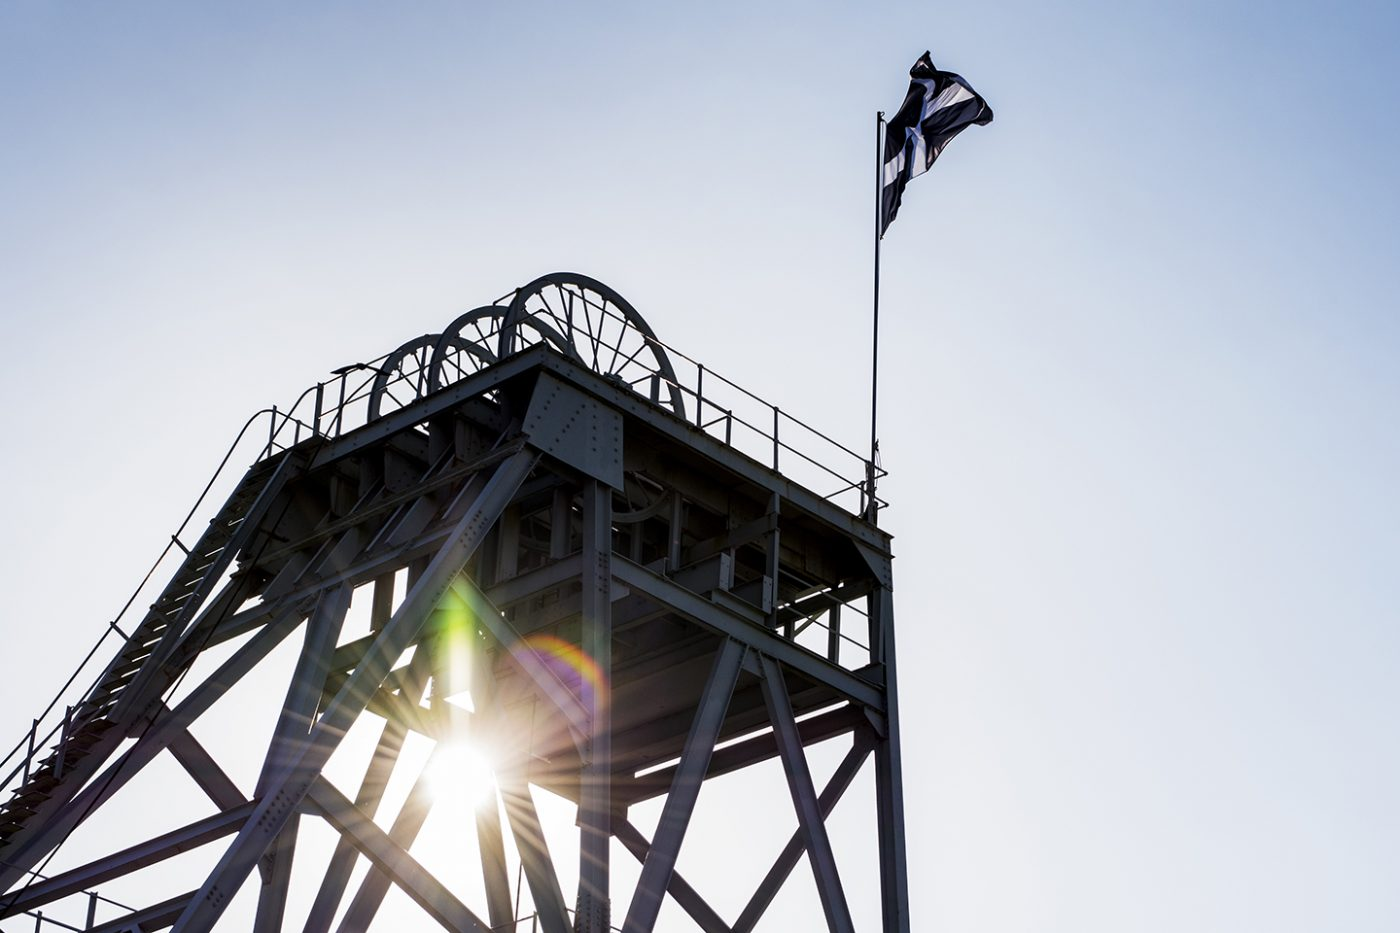 A mine shaft photographed from below with the Cornish flag flying.